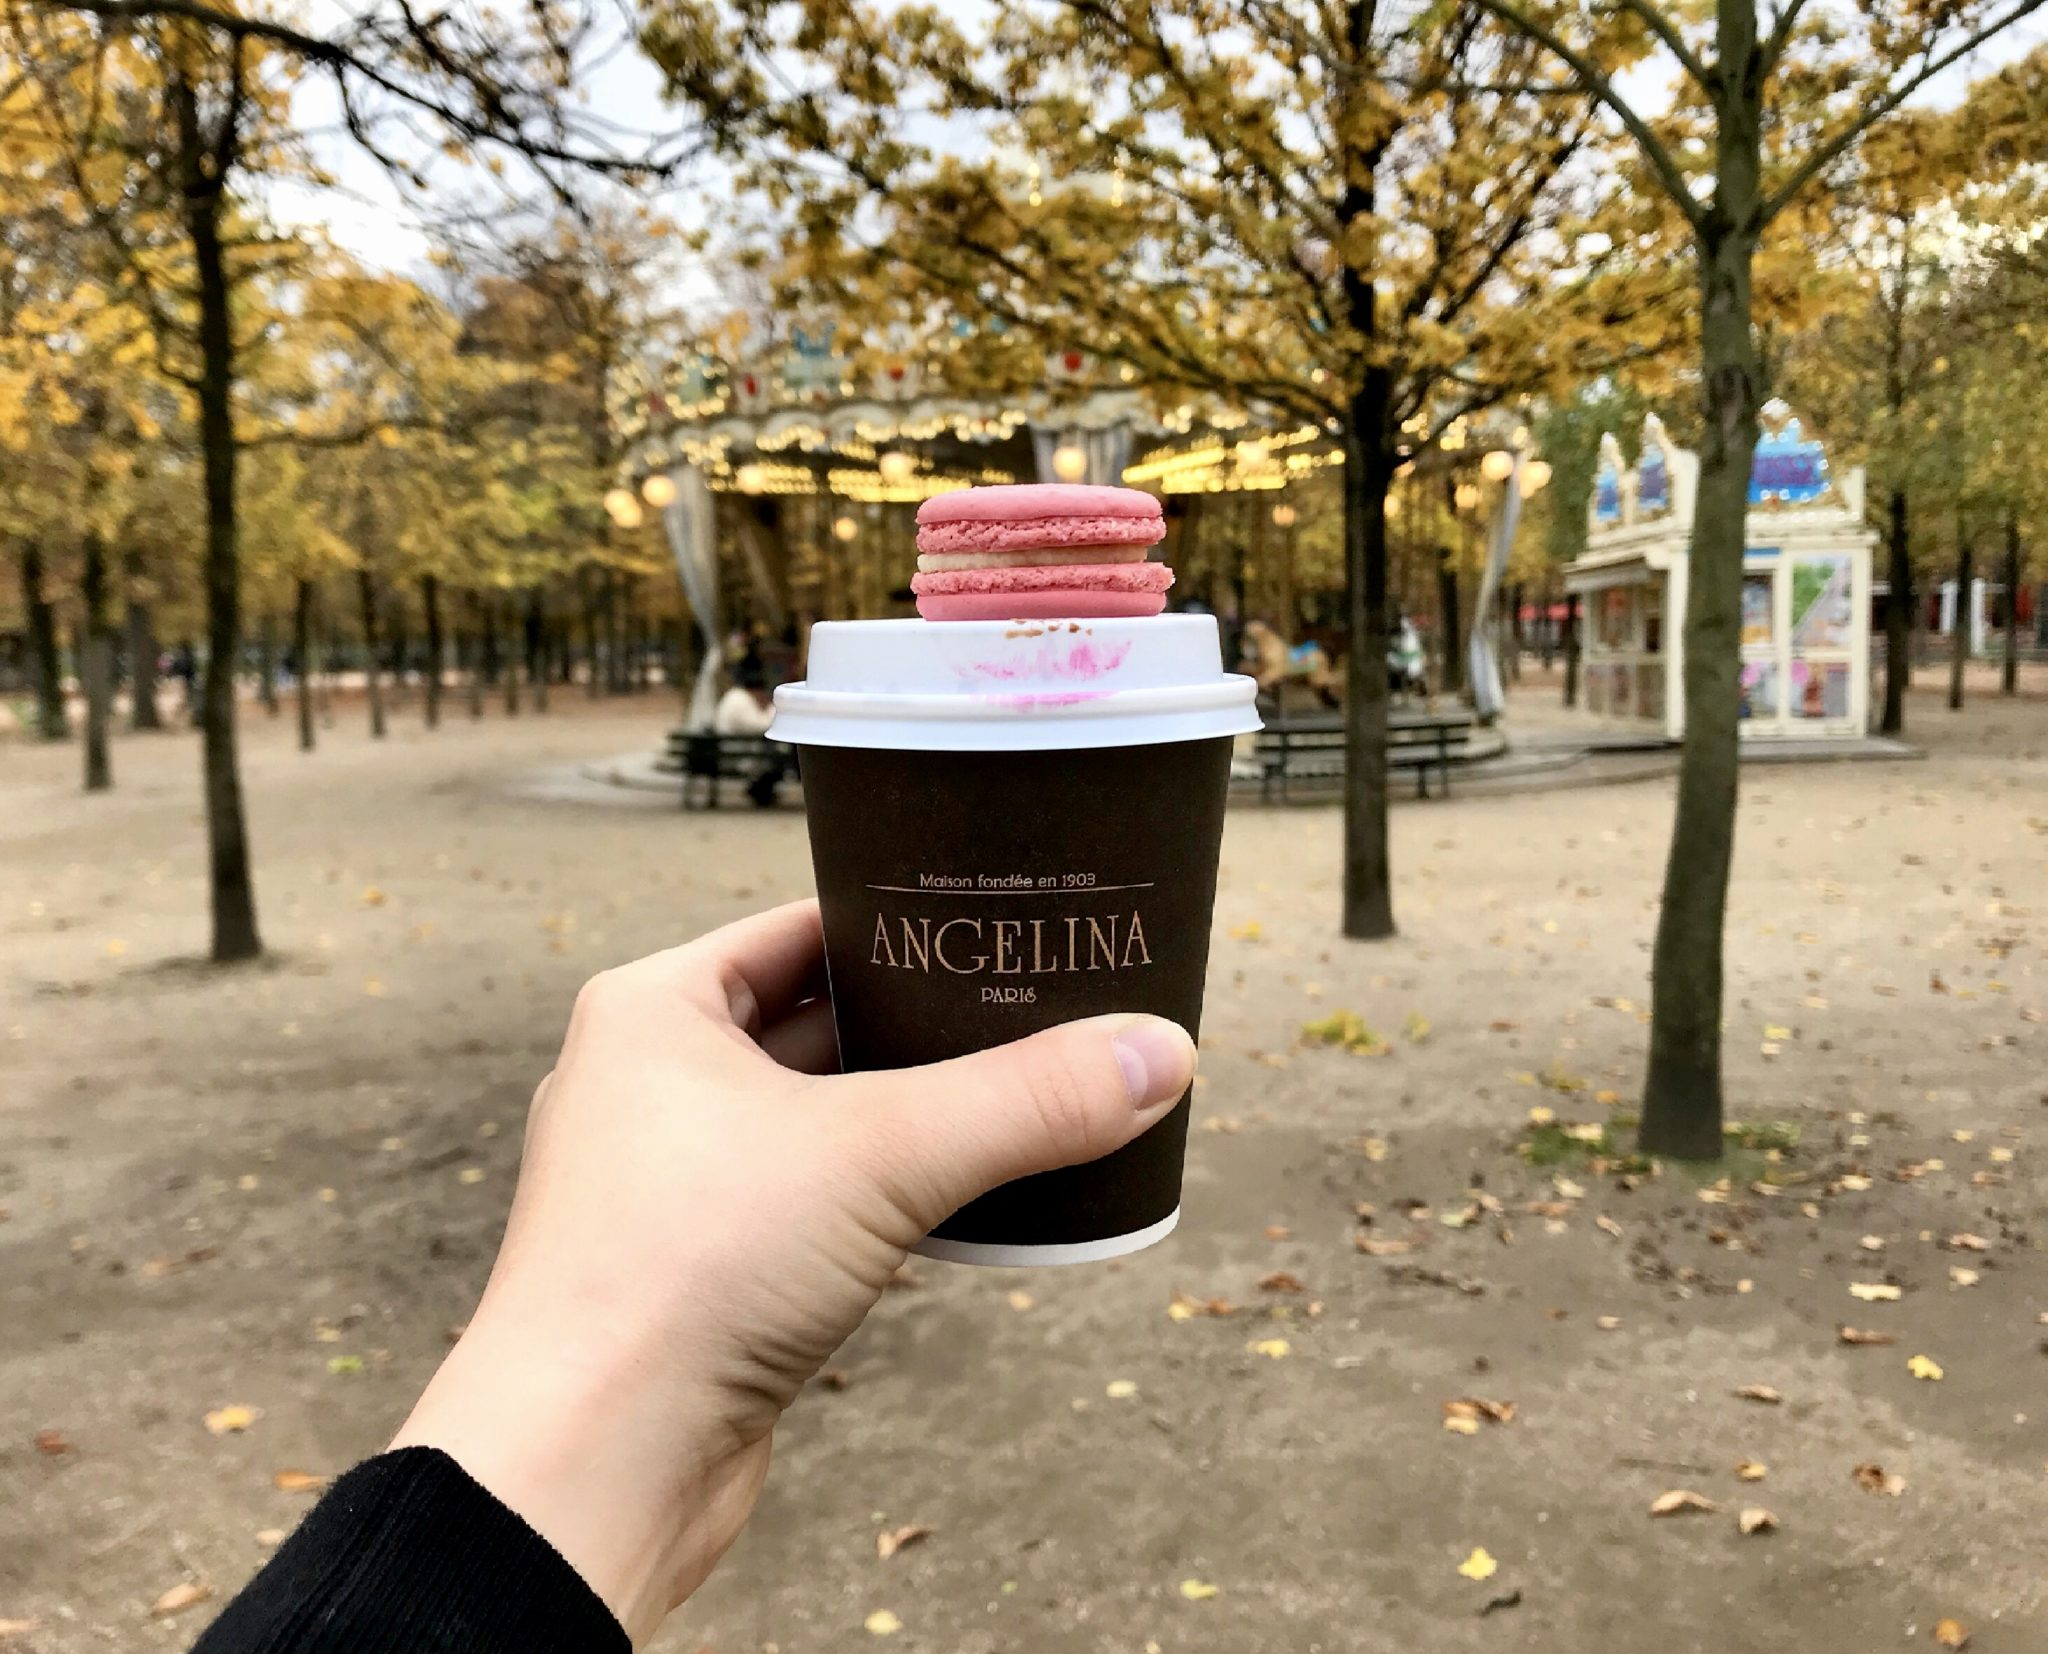 Angelina Cafe by the Tuileries Garden, Paris